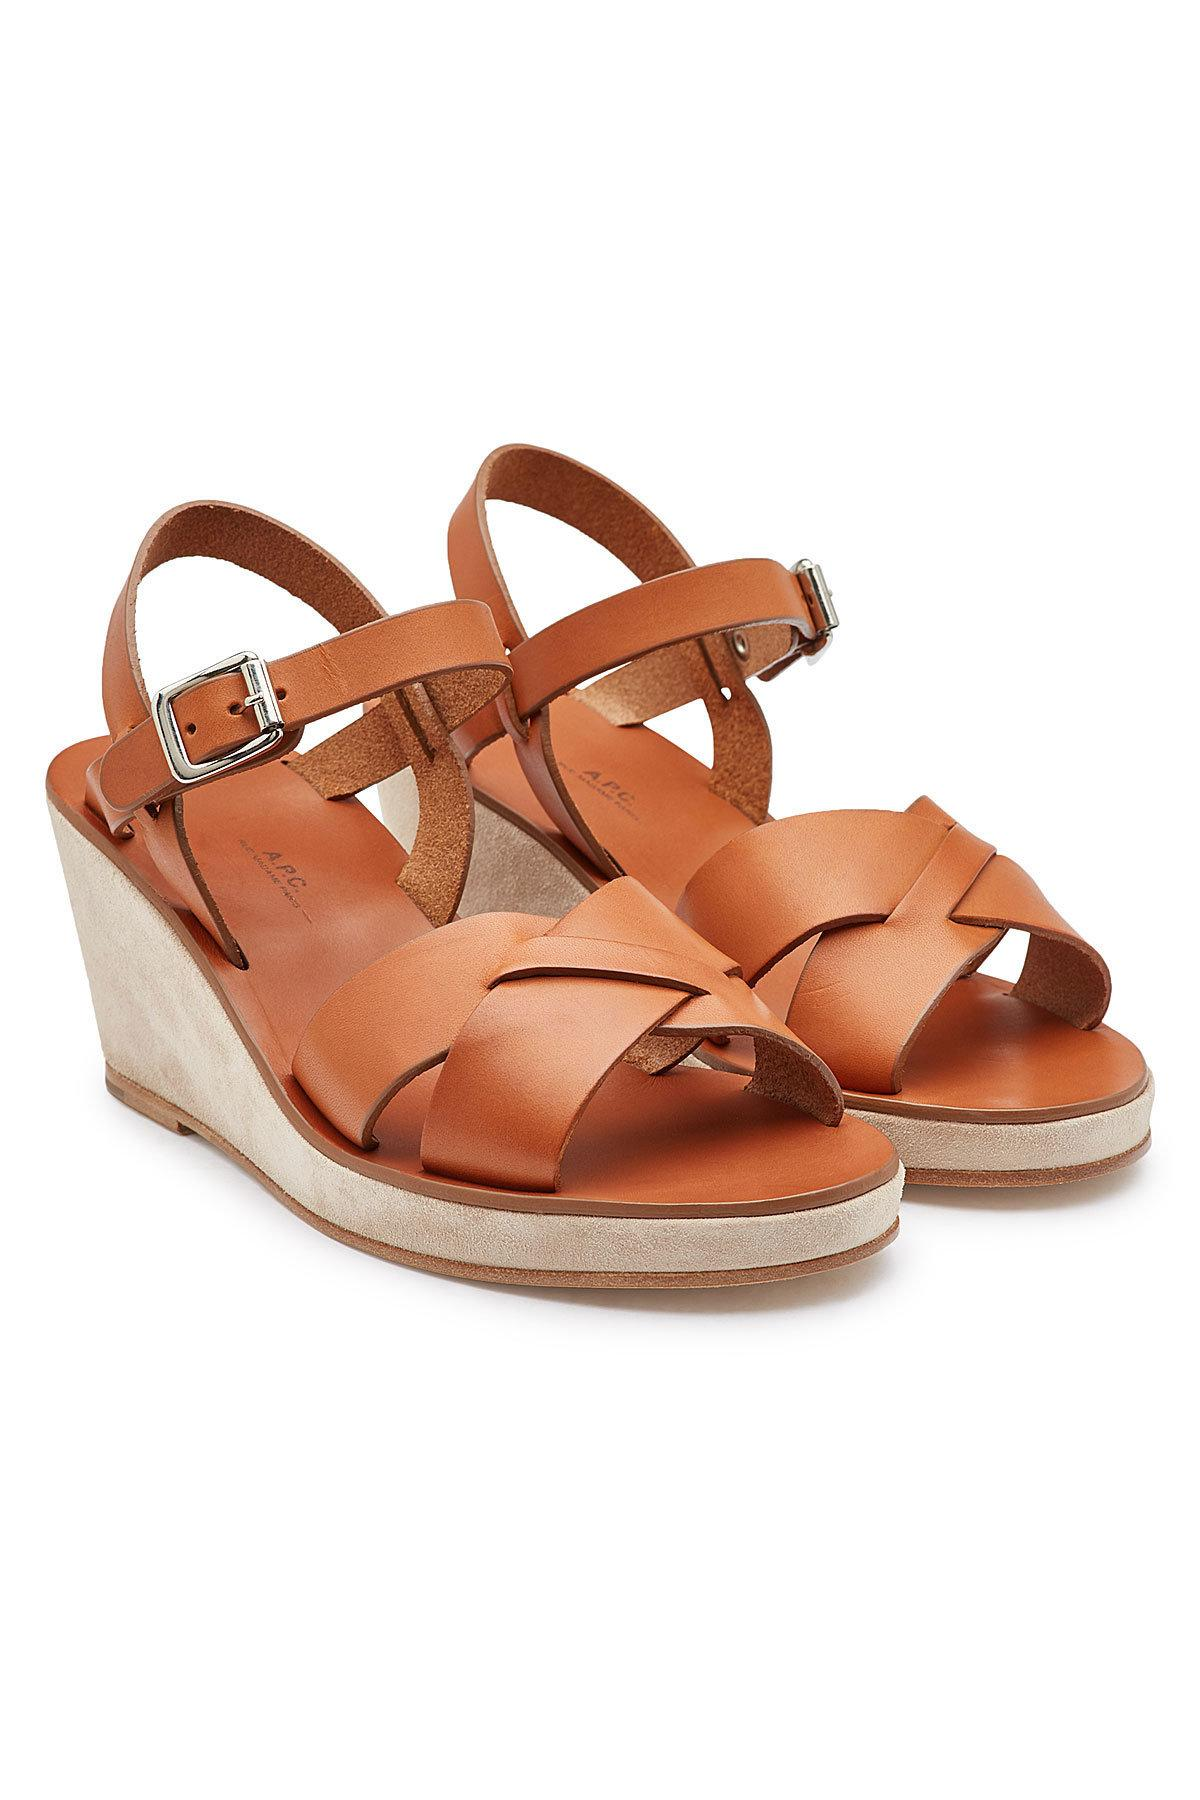 fa1059a2fdaf9c Lyst - A.P.C. Judith Leather Sandals in Brown